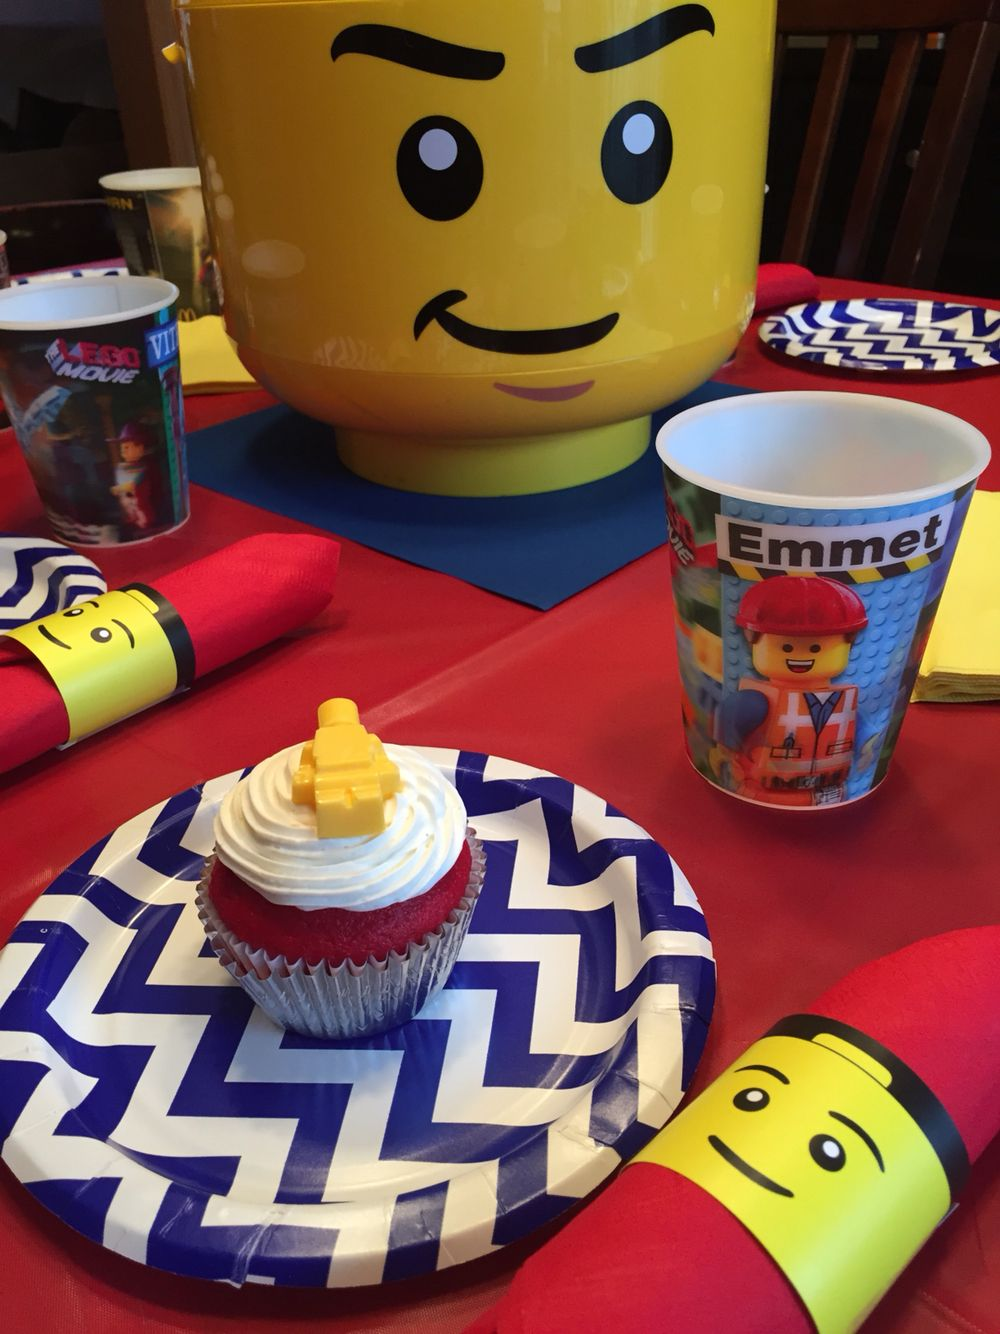 Lego party table and cupcakes